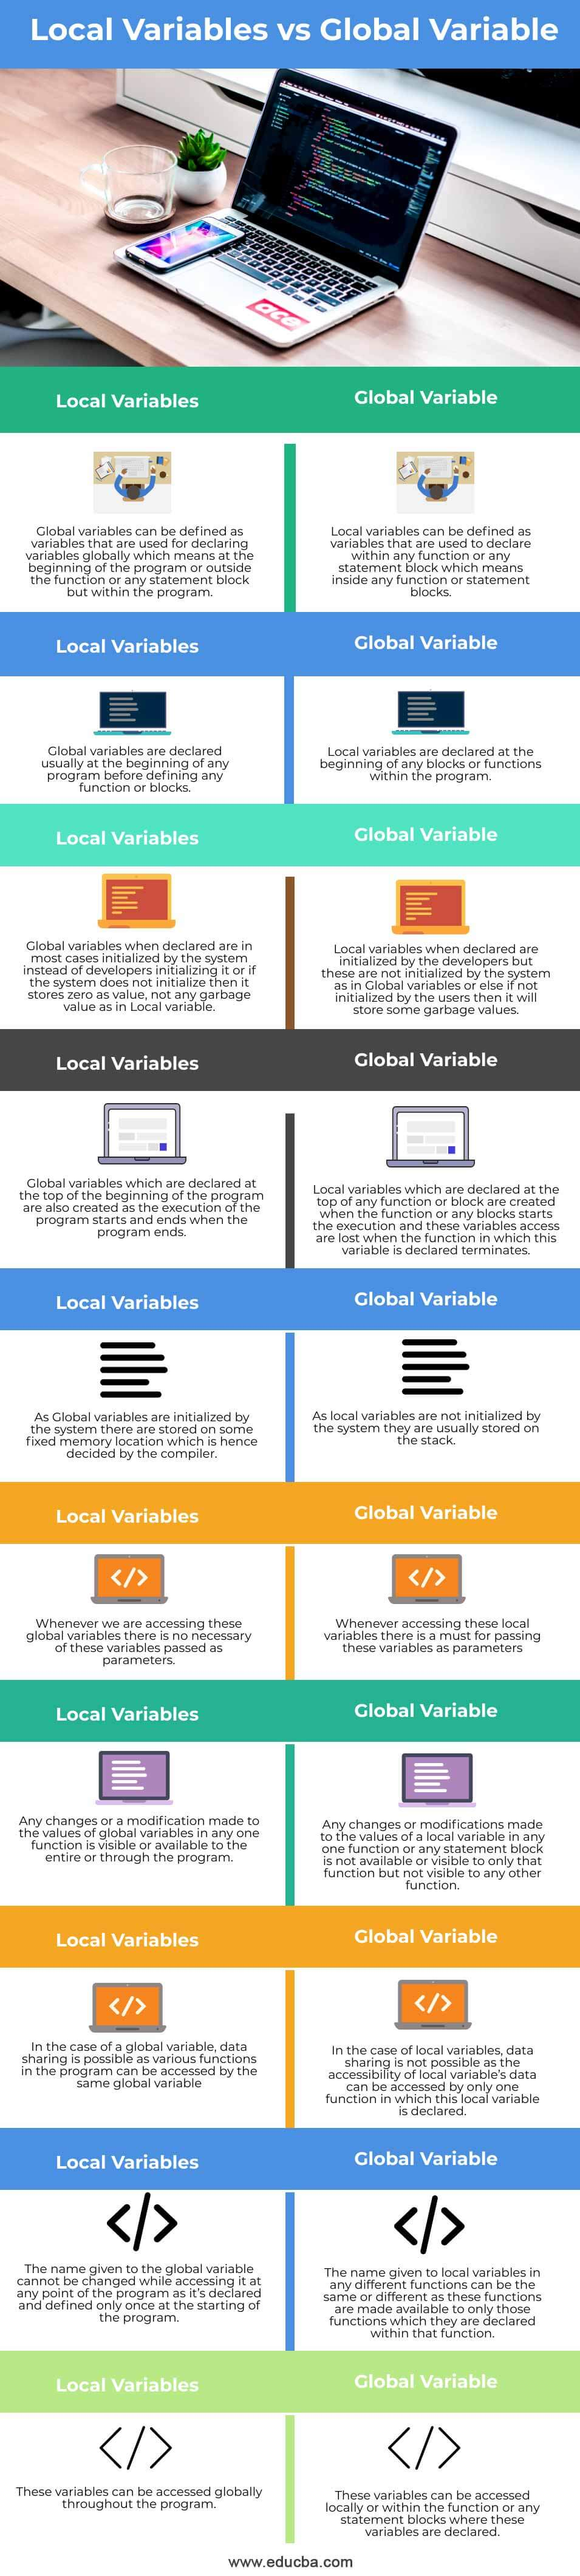 Local-Variables-vs-Global-Variable-info